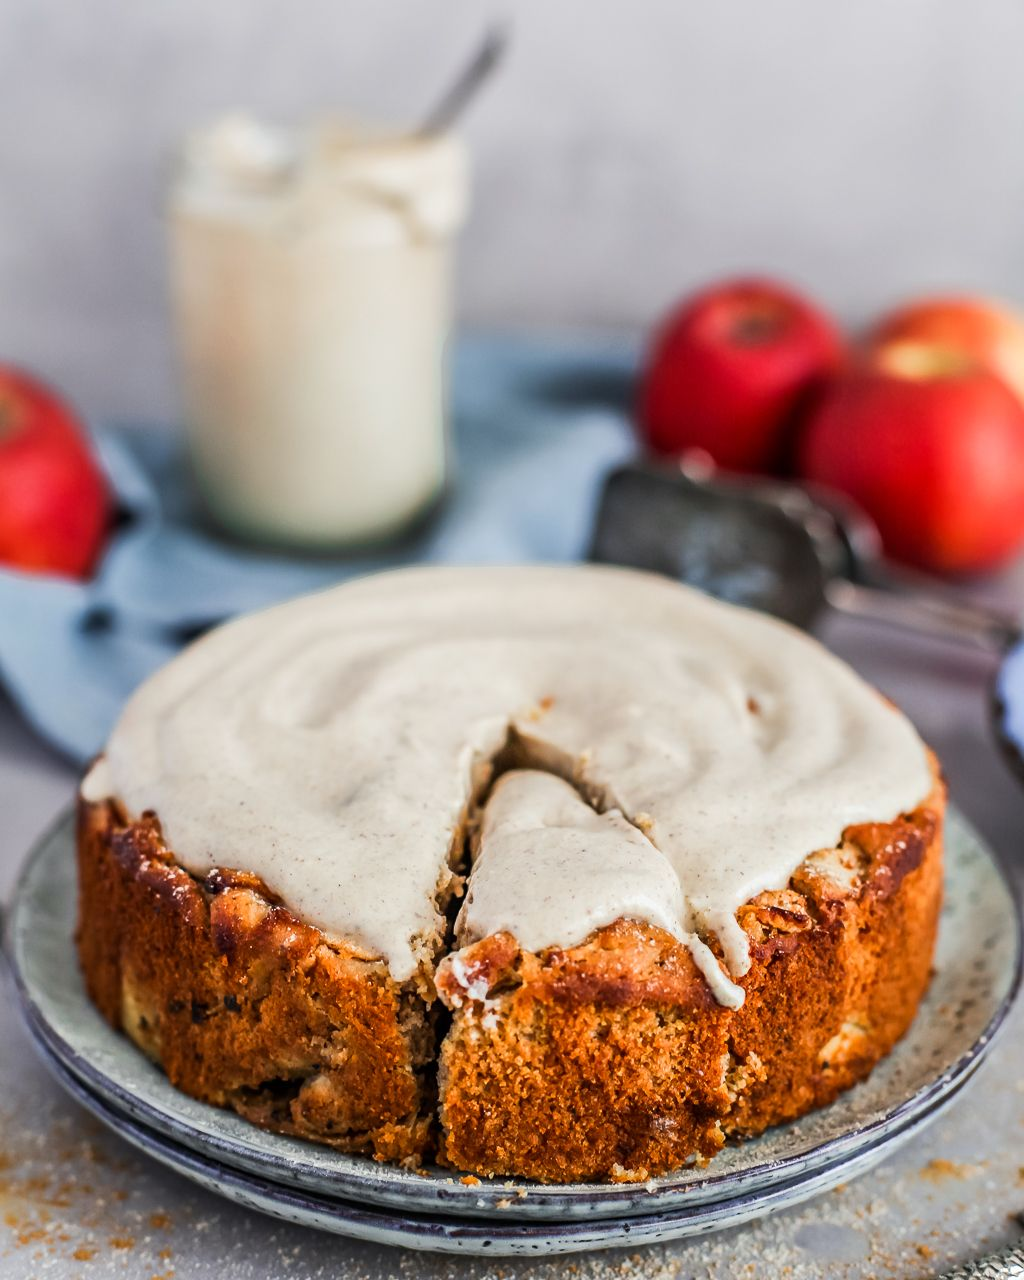 Apple Almond Cake Delicious And Healthy By Maya Recipe Almond Cakes Apple And Almond Cake Sugar Free Vegan